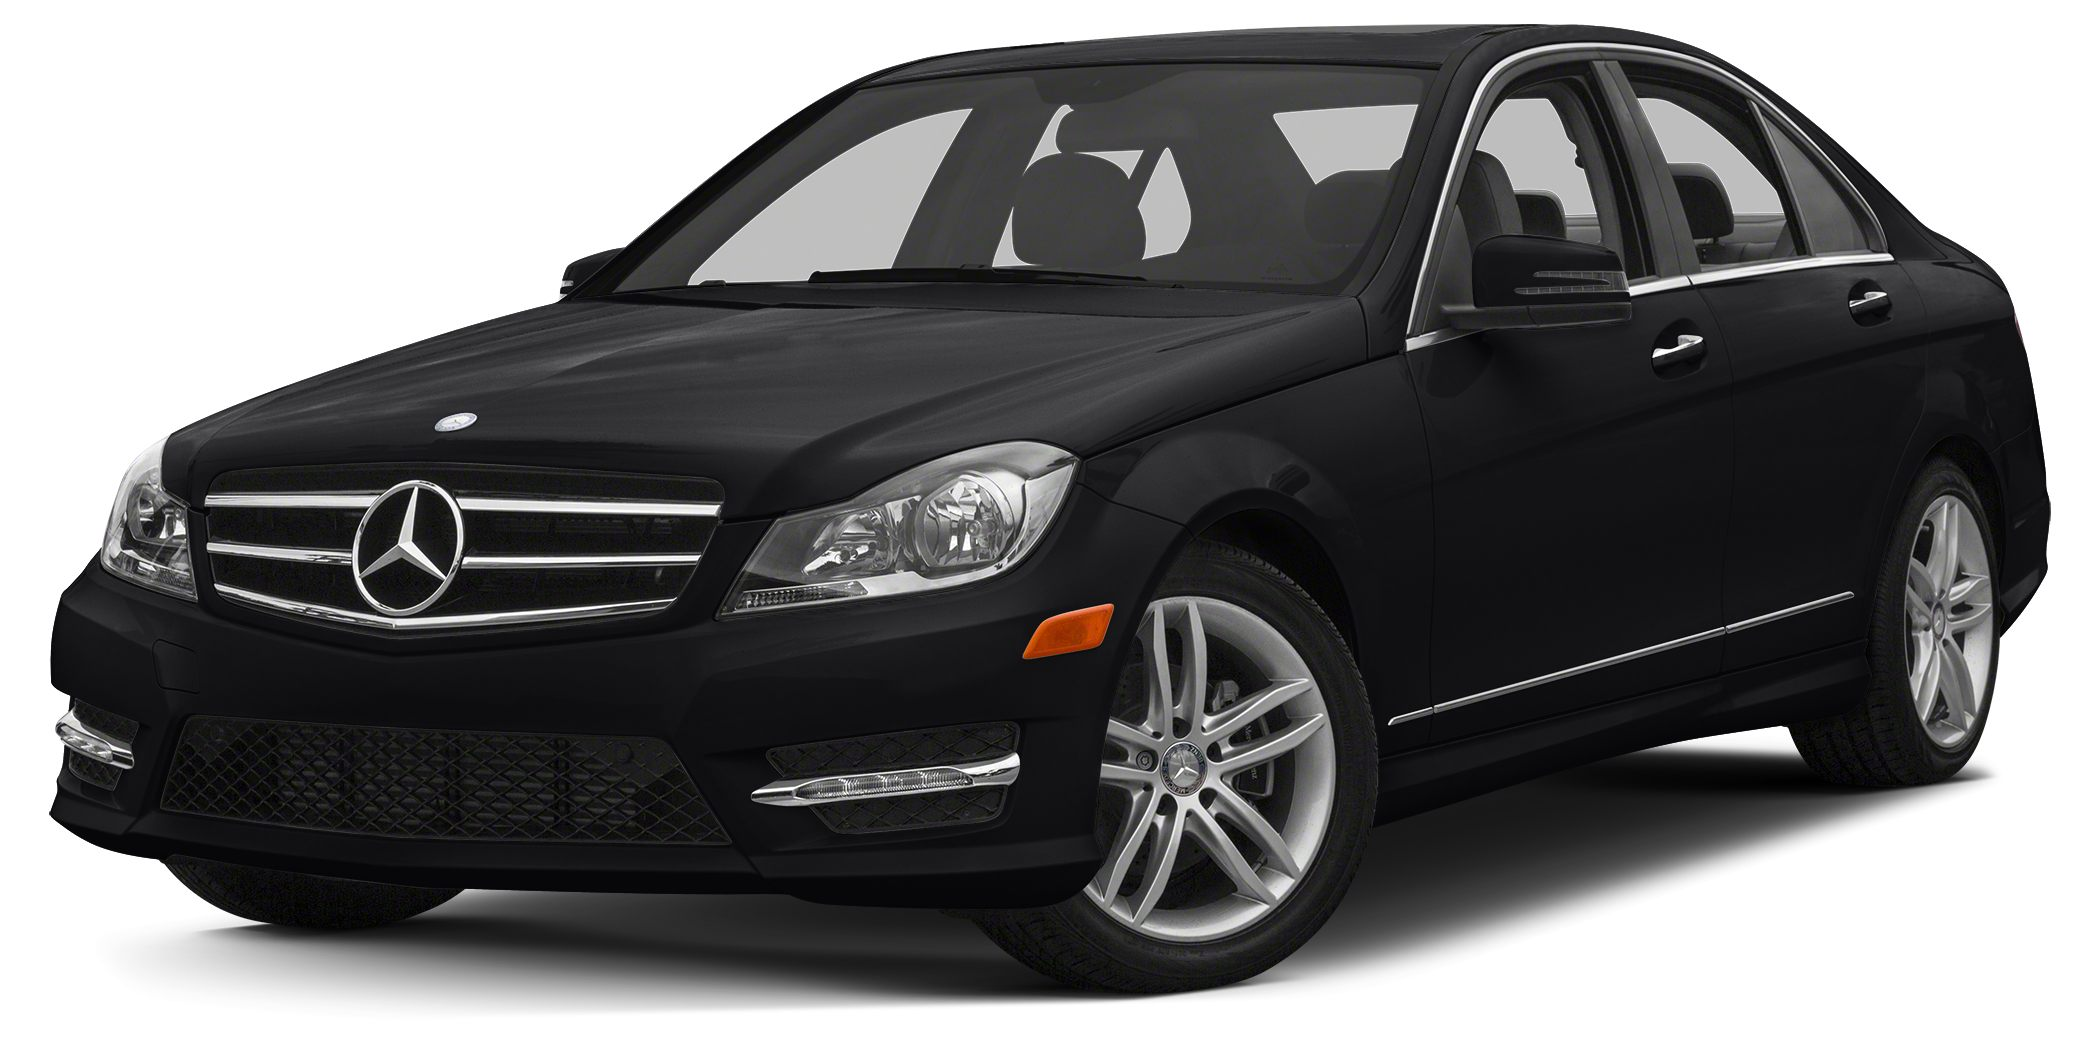 2013 MERCEDES C-Class C250 Runs mint Get down the road in this noteworthy Vehicle and fall in lov